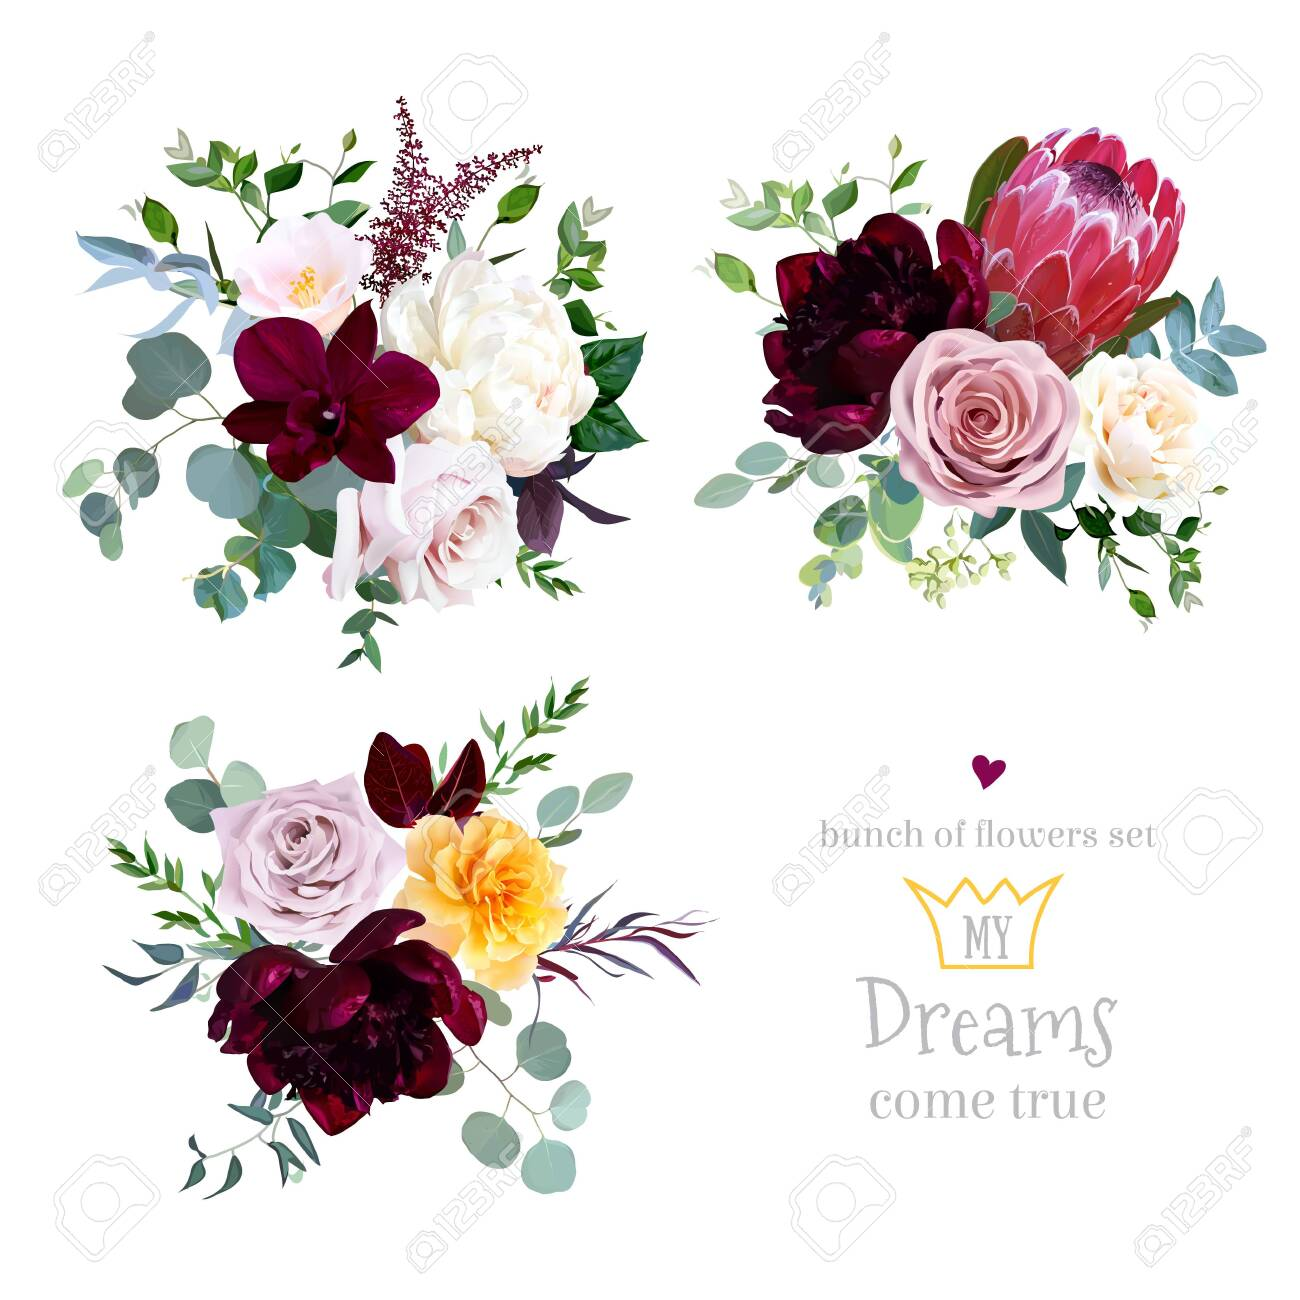 Dusty pink, yellow and creamy rose, magenta protea, burgundy and white peony flowers, orchid, pink camellia, eucalyptus, greenery, berry, marsala astilbe vector design bouquets. Isolated and editable - 136423704